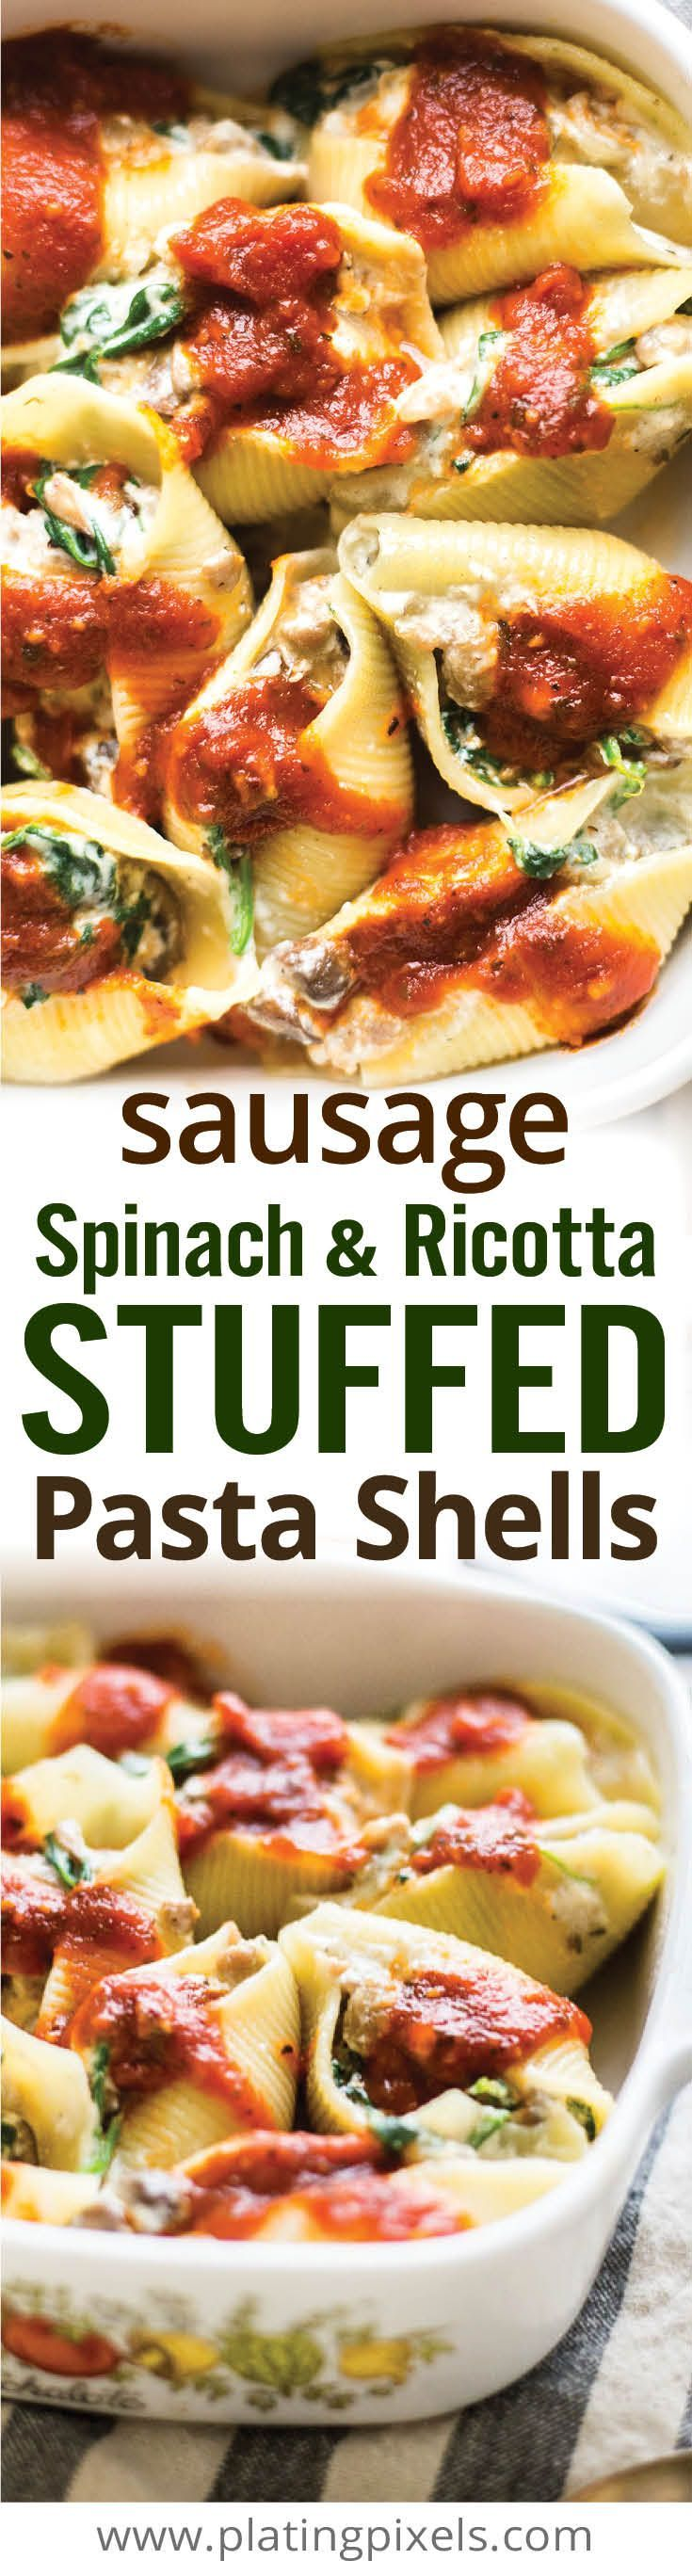 Sausage, Spinach and Ricotta Stuffed Pasta Shells